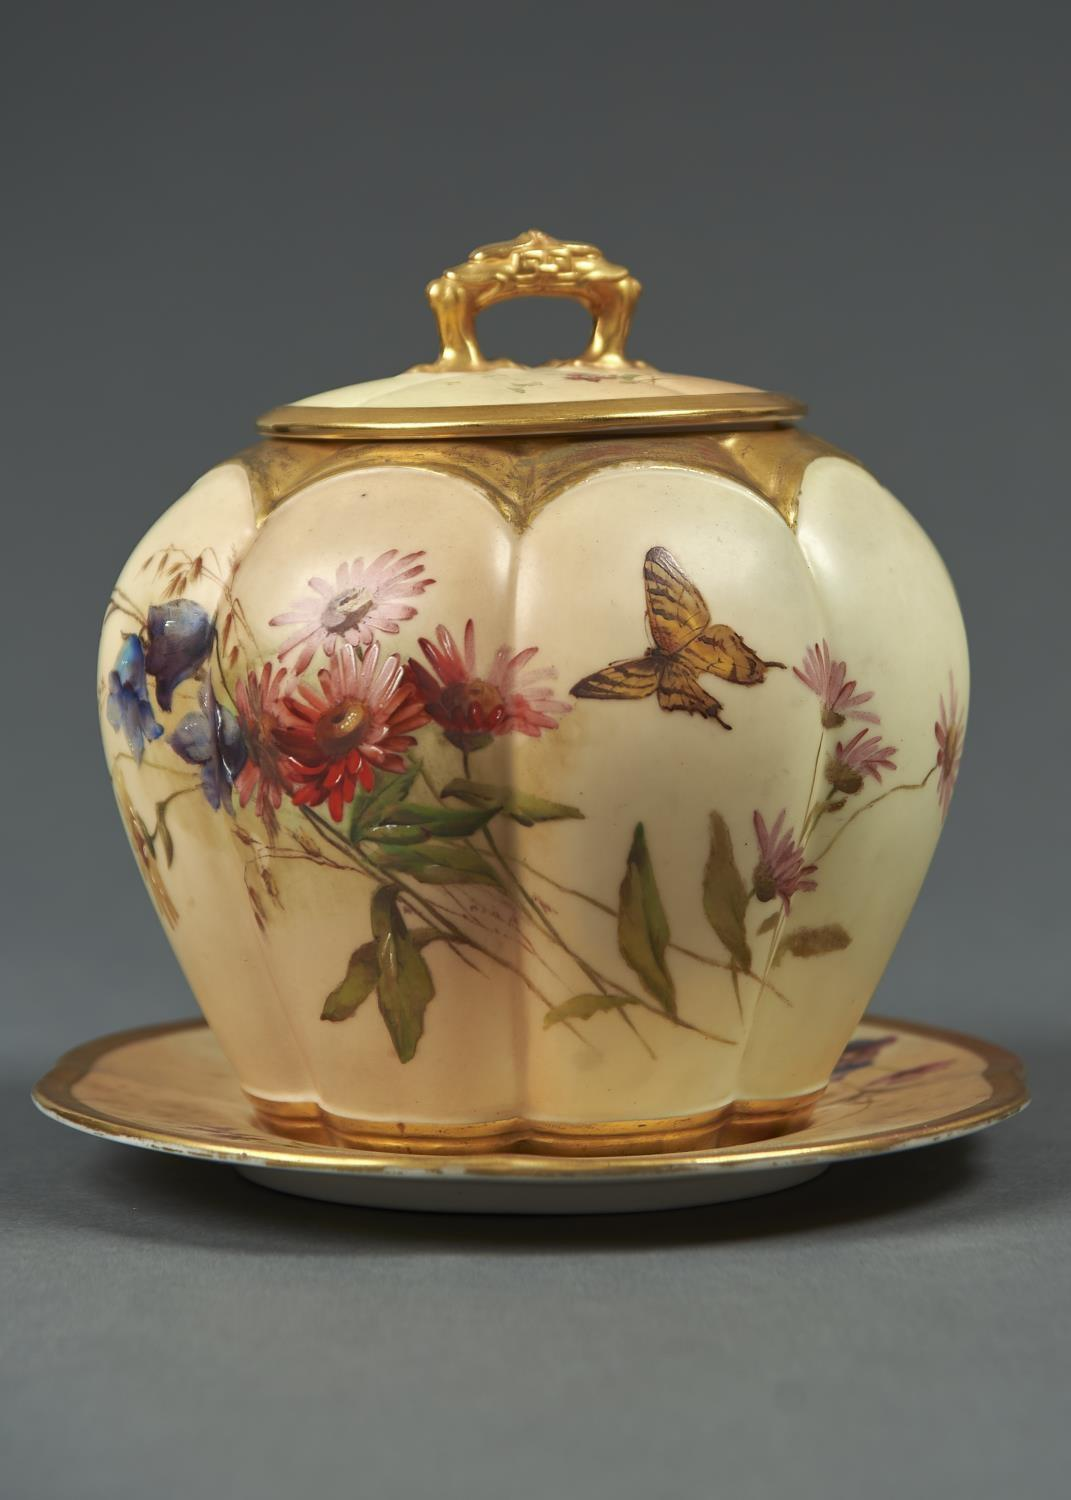 A ROYAL WORCESTER LOBED OVOID MELON JAR, COVER AND STAND, 1900, PRINTED AND PAINTED WITH A